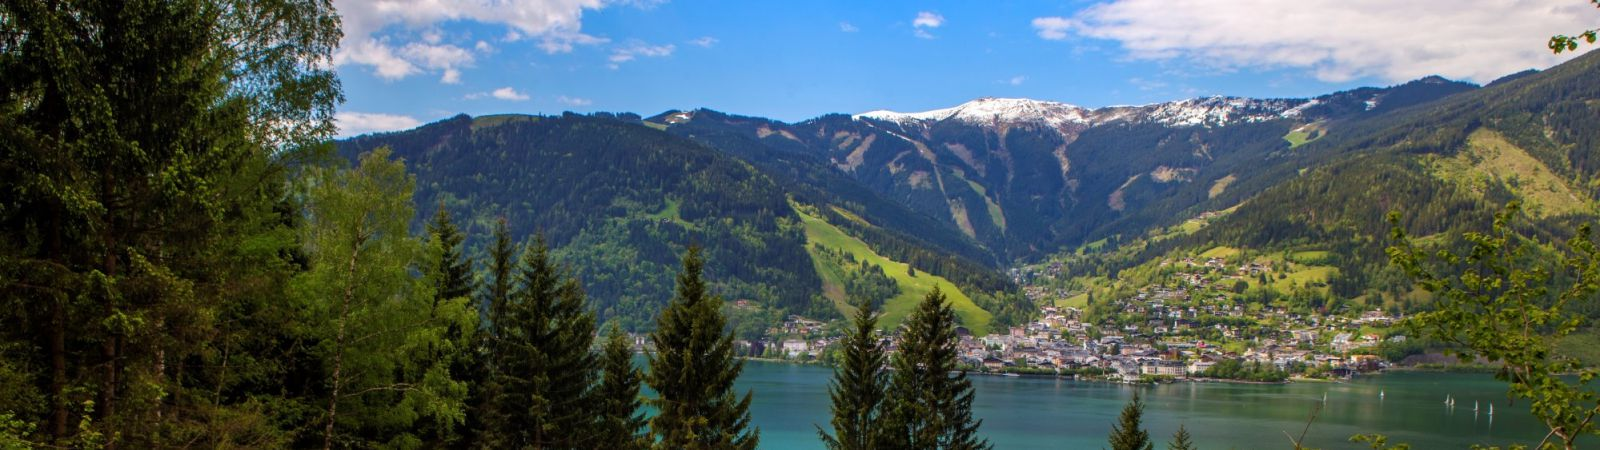 thumersbach berg in zell am see